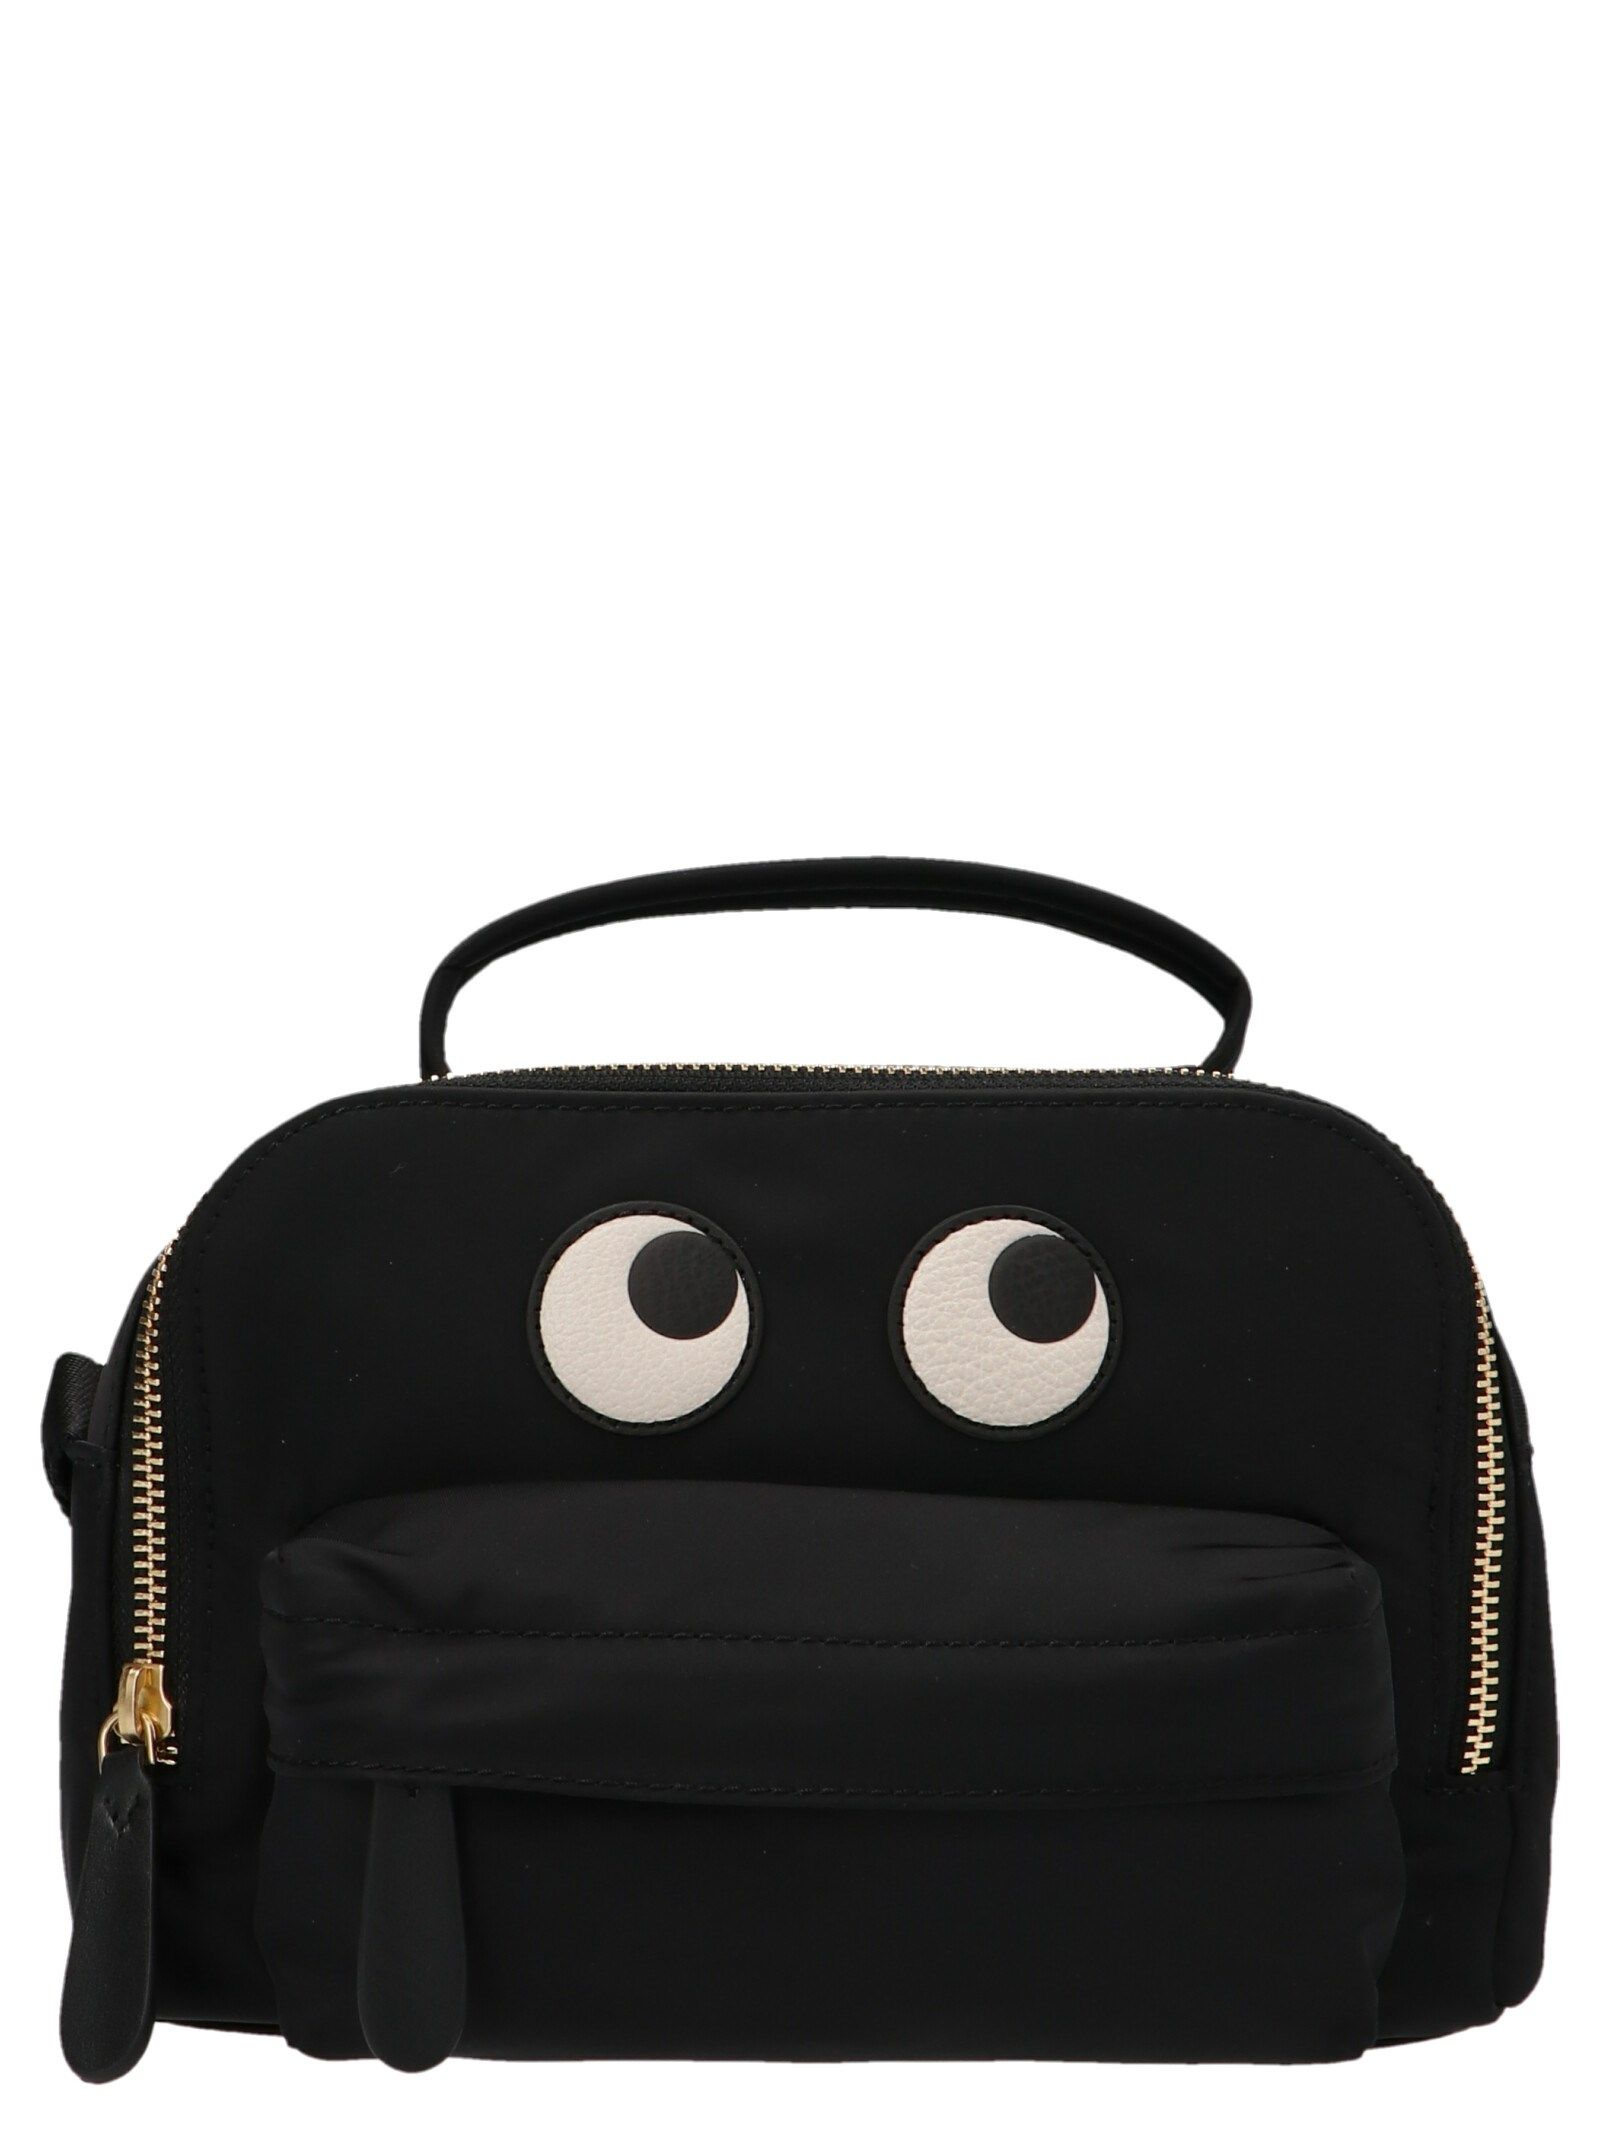 Anya Hindmarch ANYA HINDMARCH WOMEN'S 152969BLACK BLACK OTHER MATERIALS HANDBAG